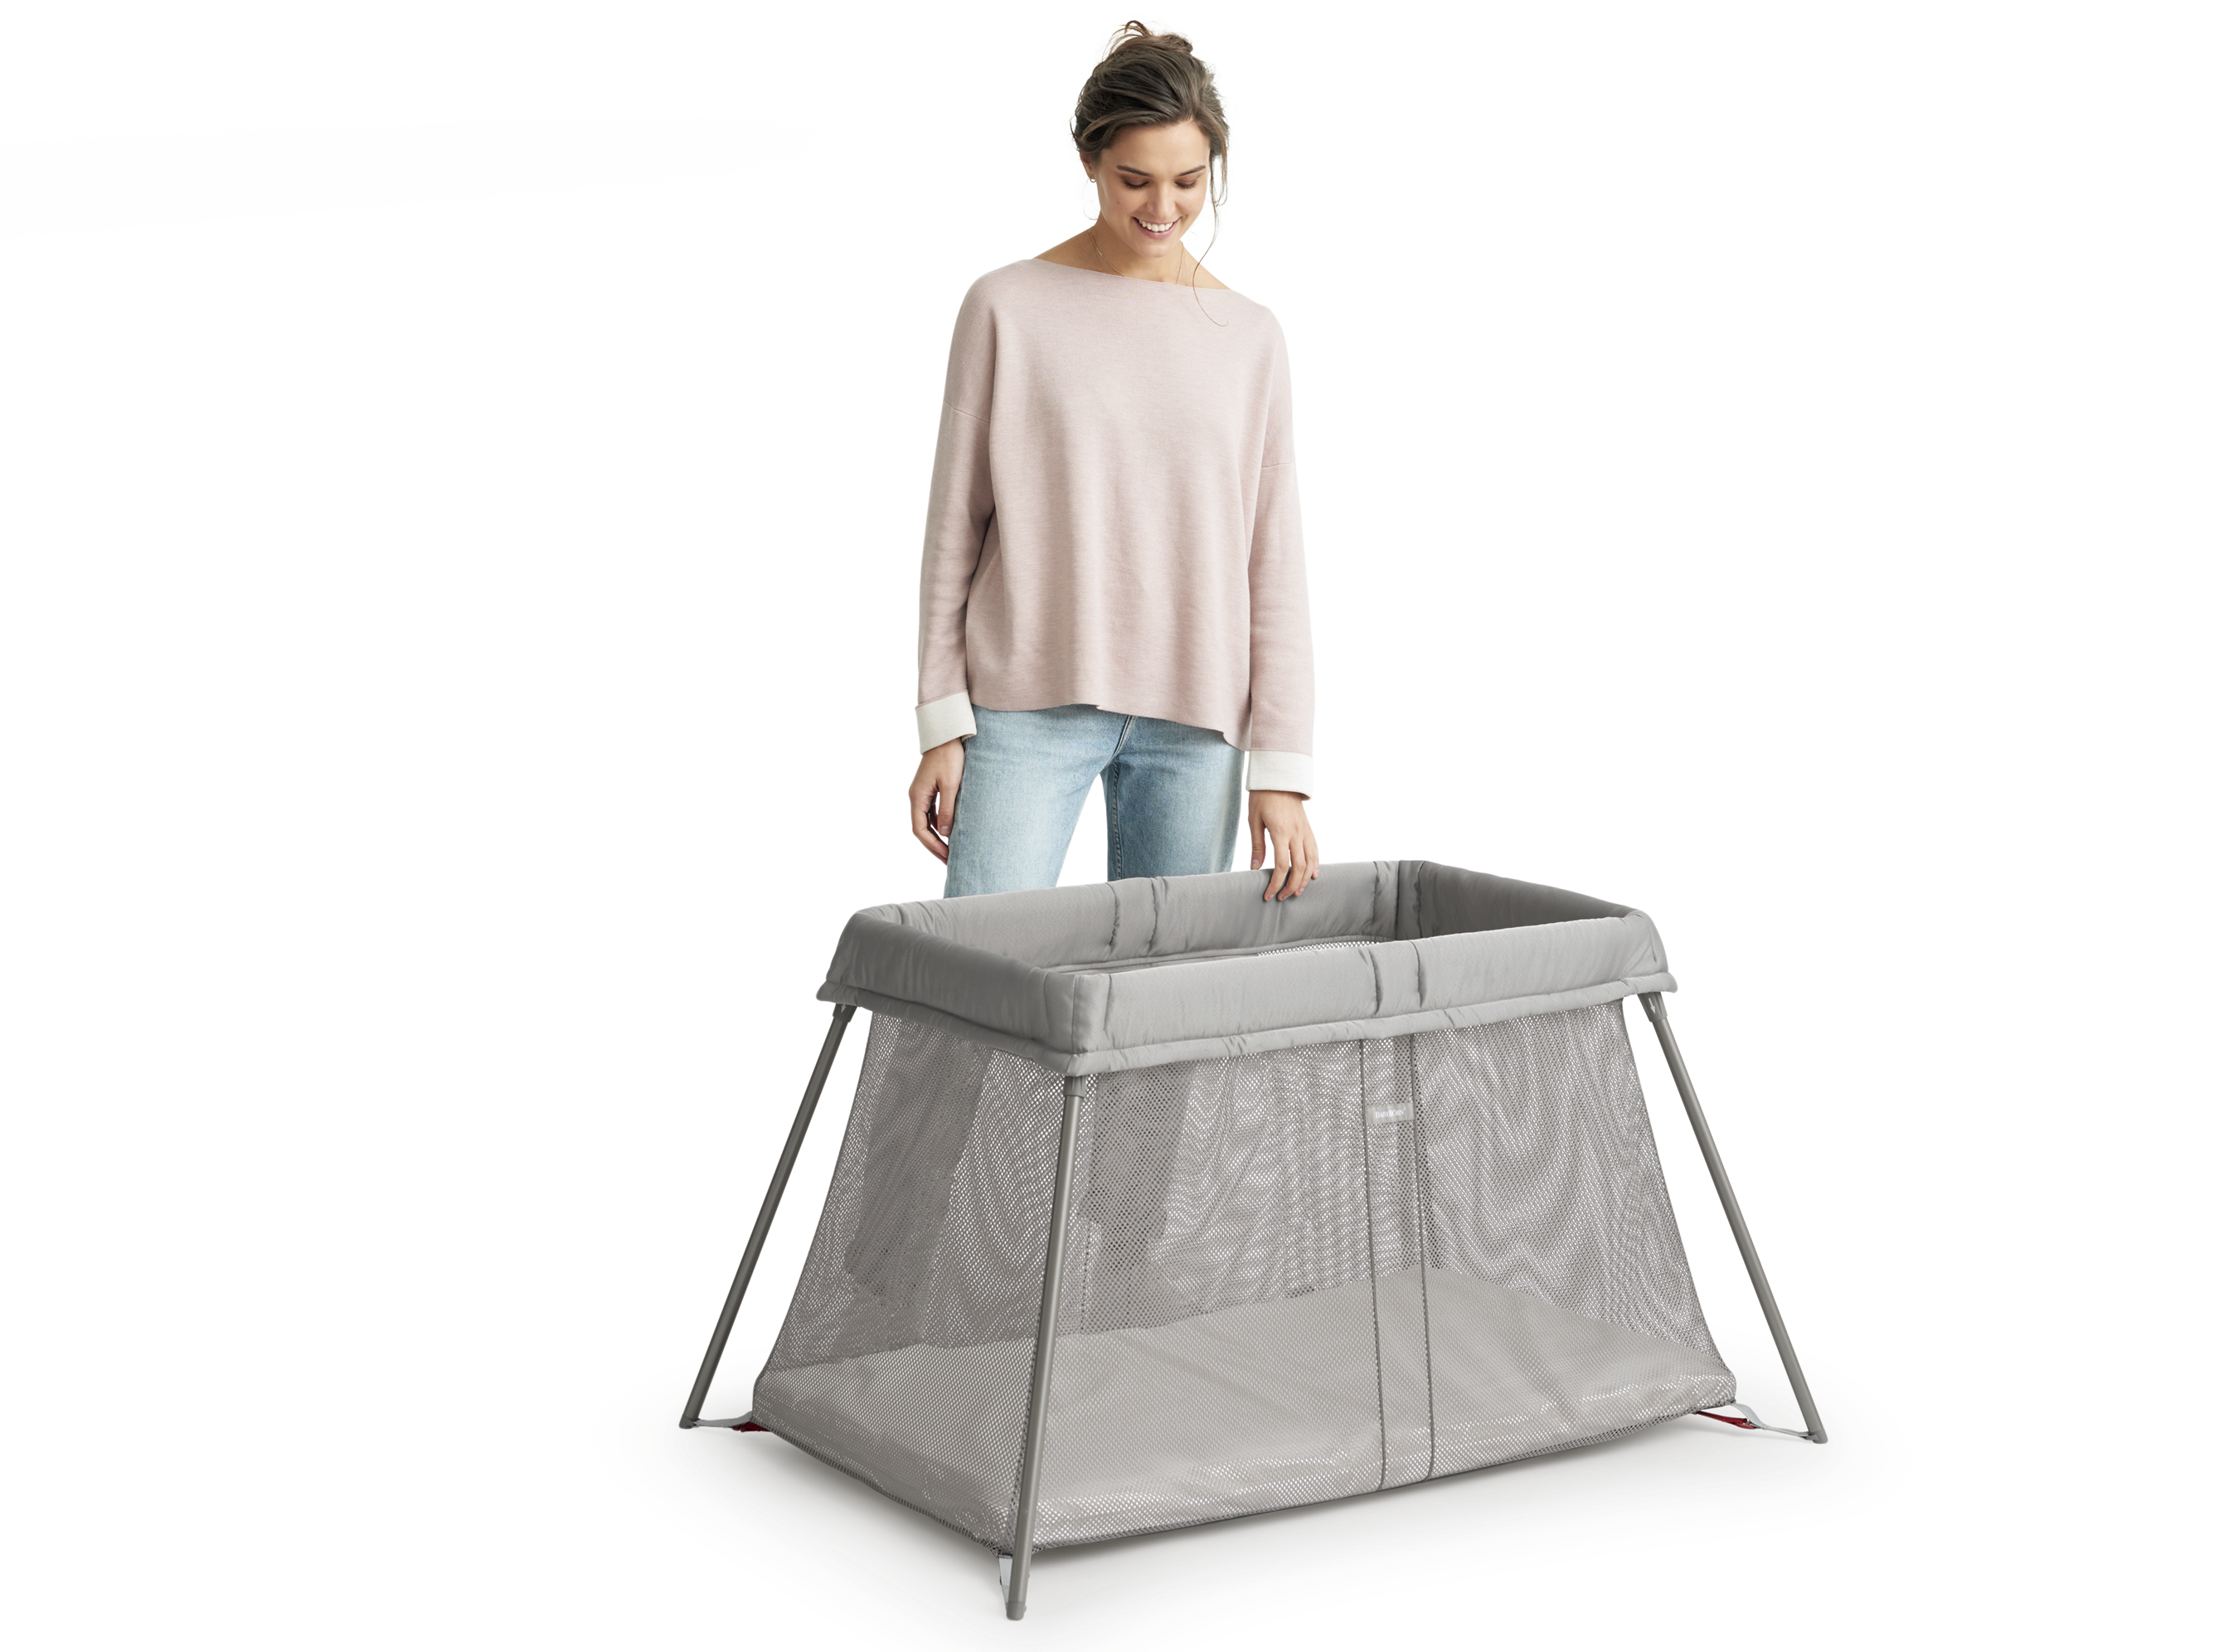 Small Travel Cot For Baby Easy To Use Babybj 214 Rn